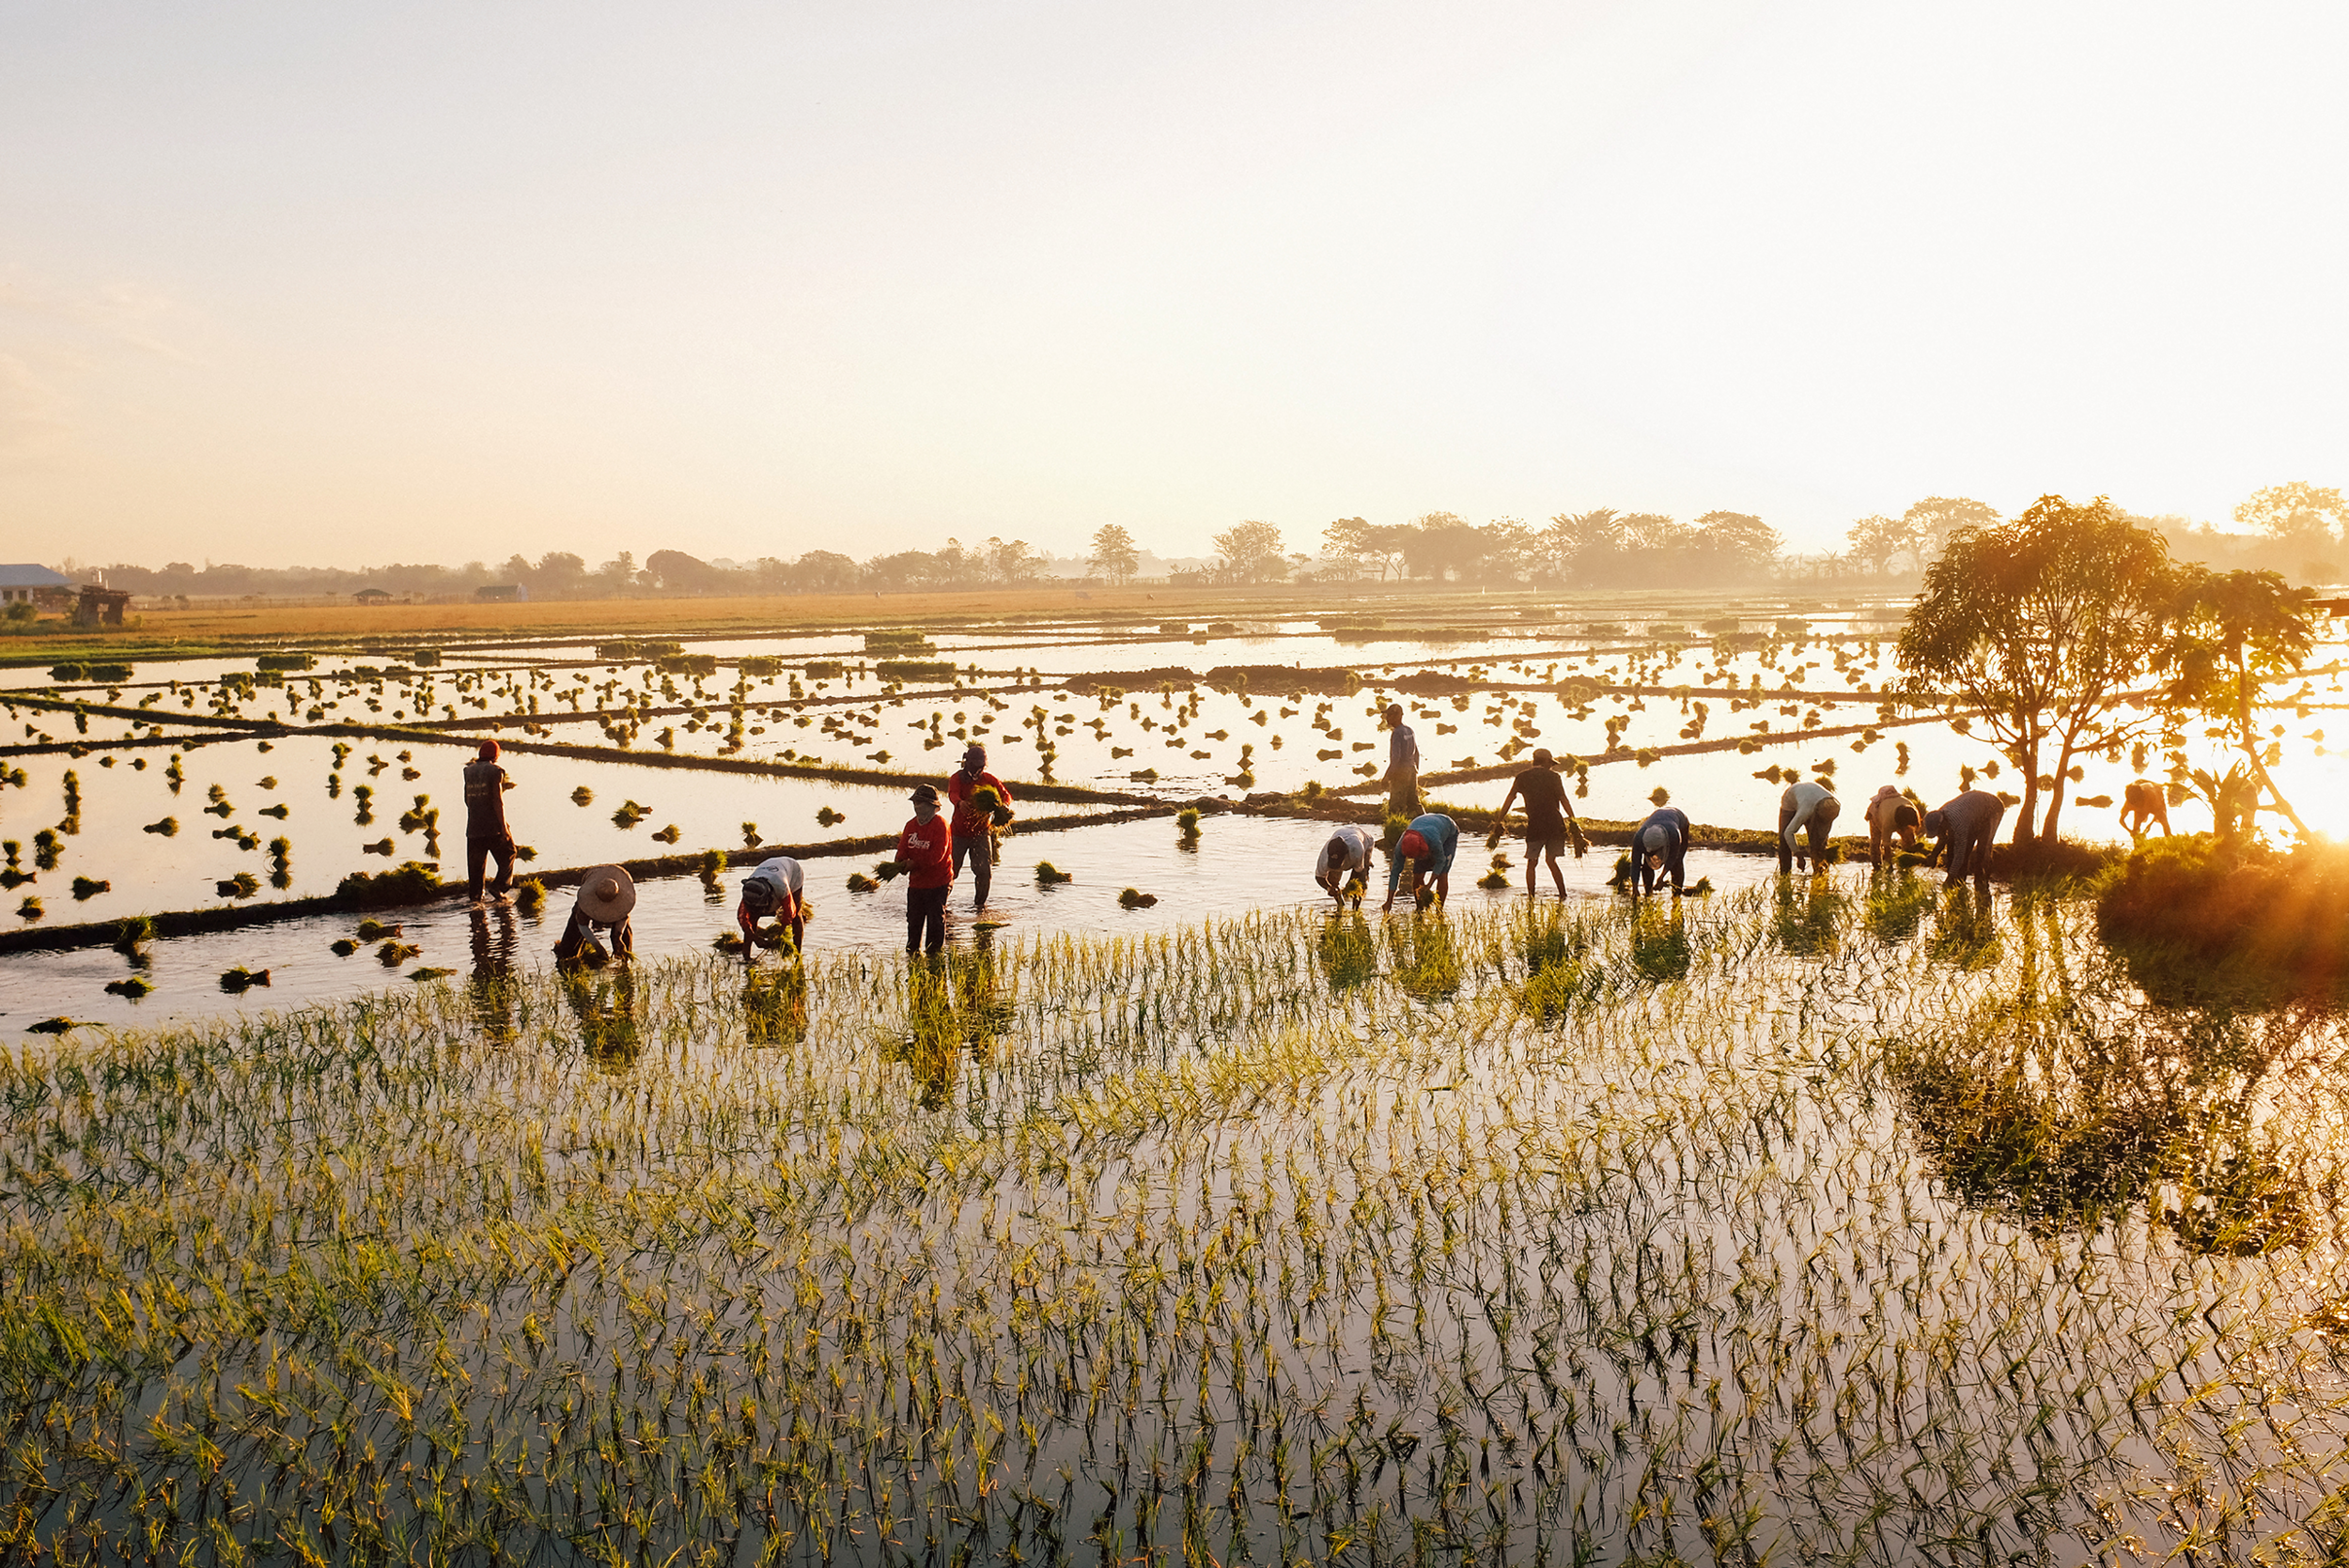 NUEVA ECIJA, PHILIPPINES —The beginning of the year marks the season for planting. Farmers plot the palay or unmilled rice against the rising sun.